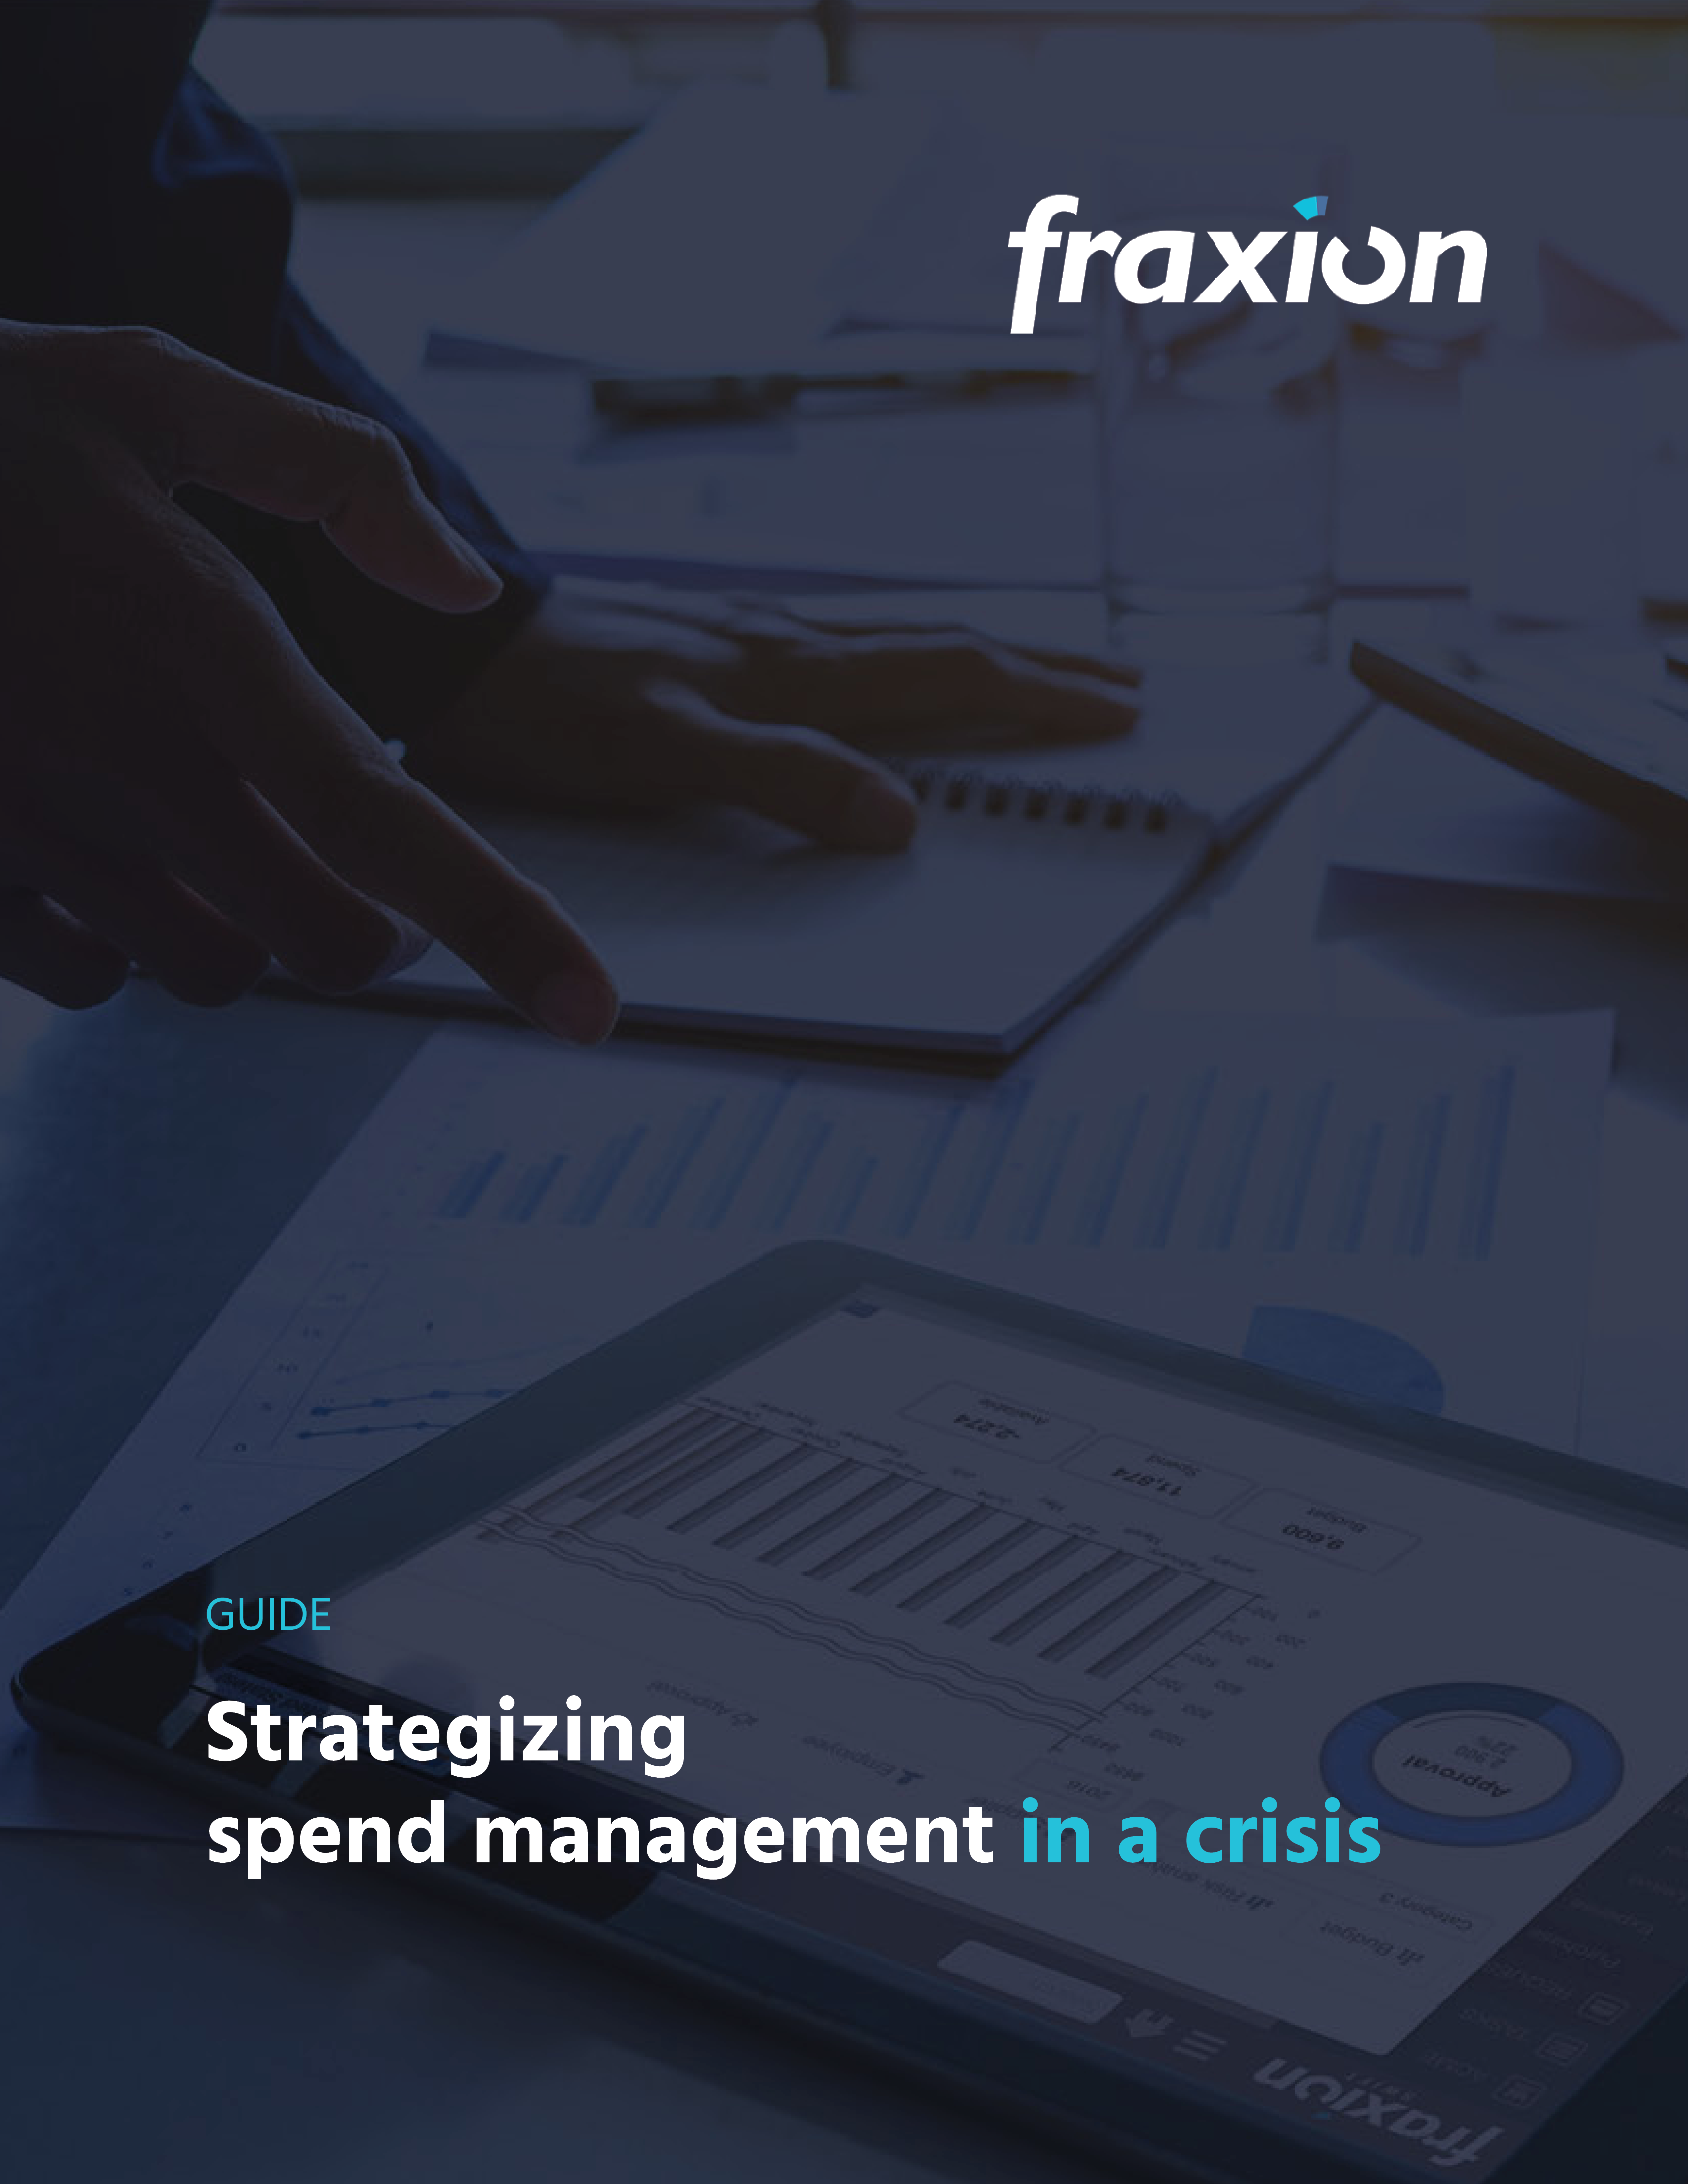 Guide - Strategizing Spend Management in a crisis